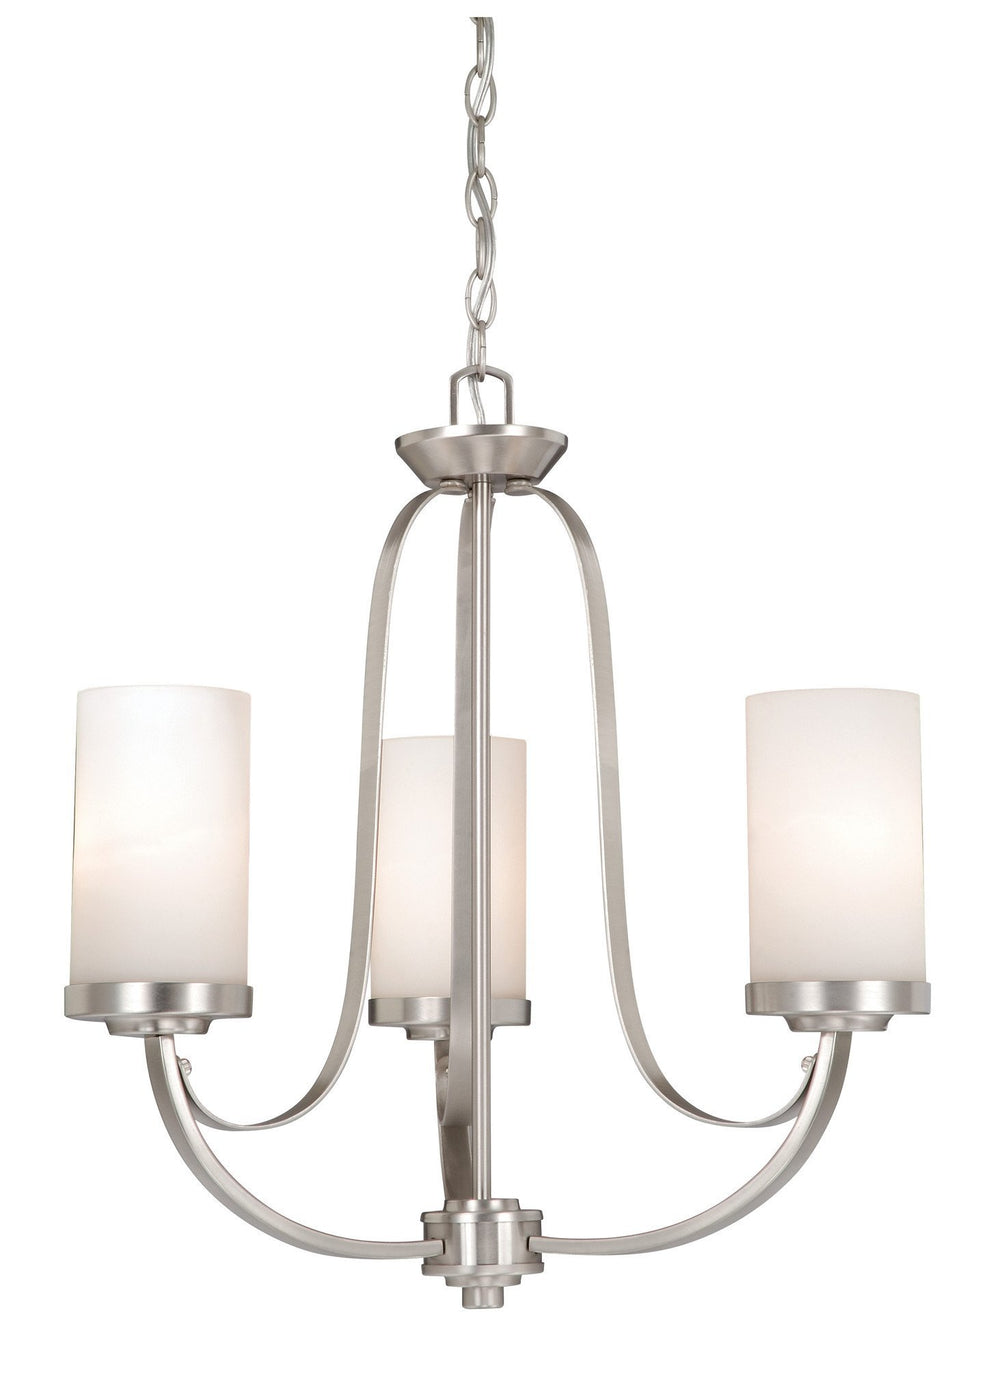 OX-CHU003BN Vaxcel Oxford 3L Chandelier Brushed Nickel